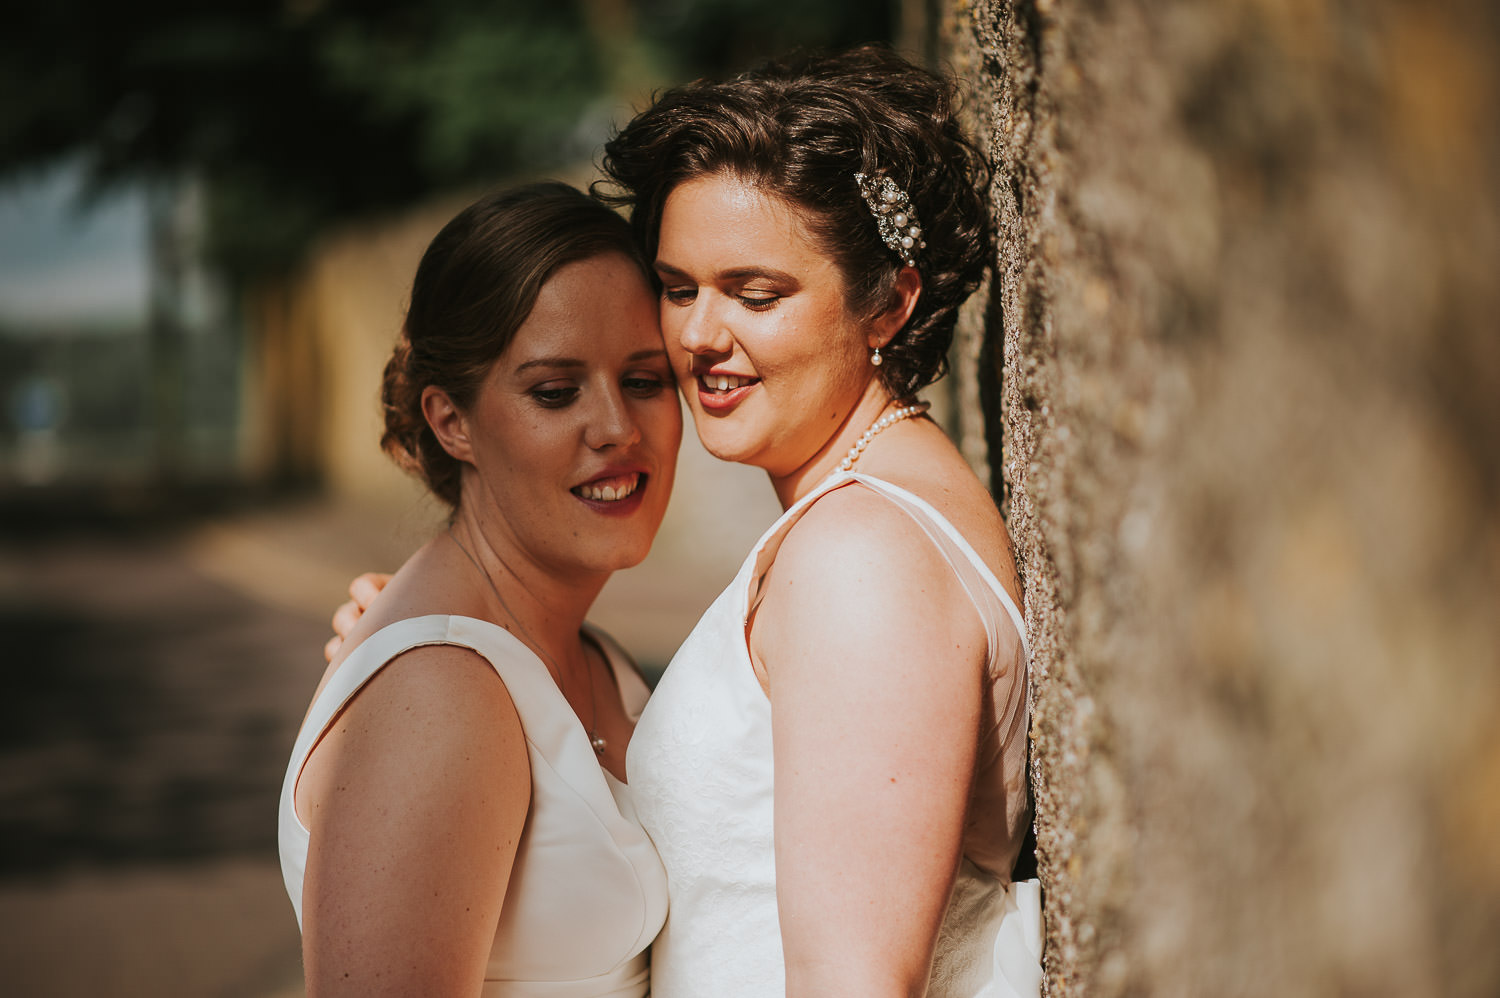 brides leaning in close in the afternoon sunshine